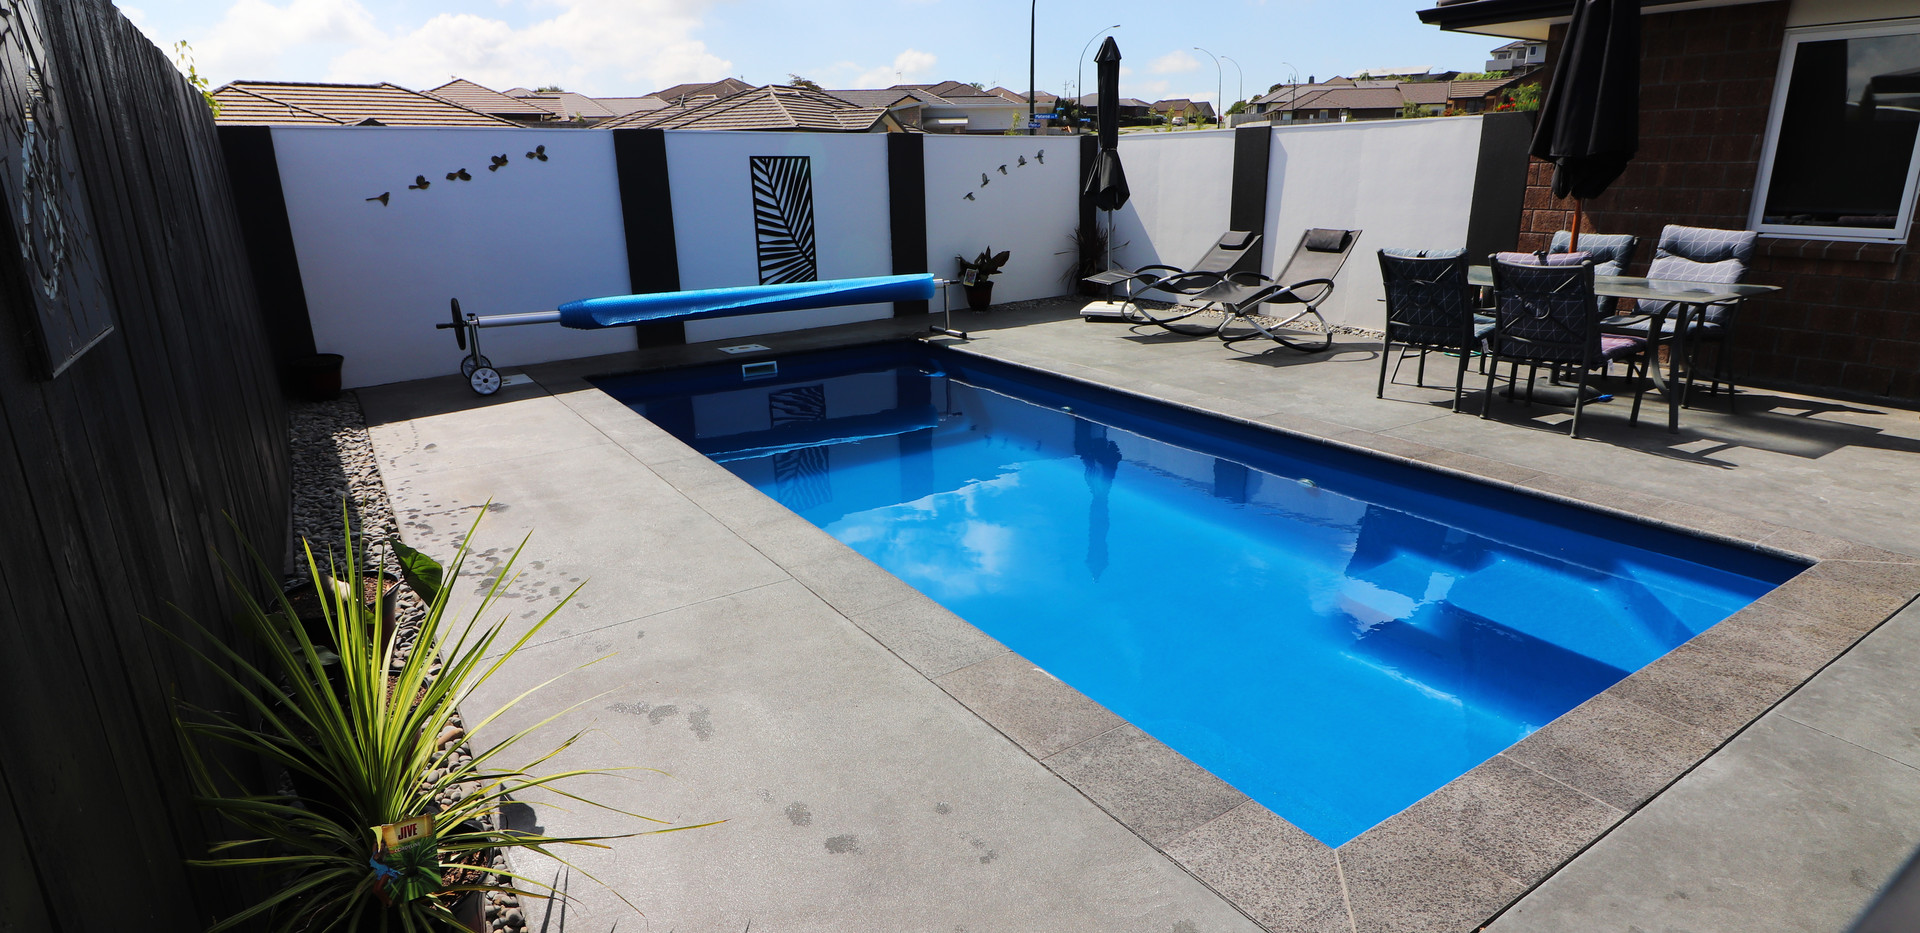 Small family pool